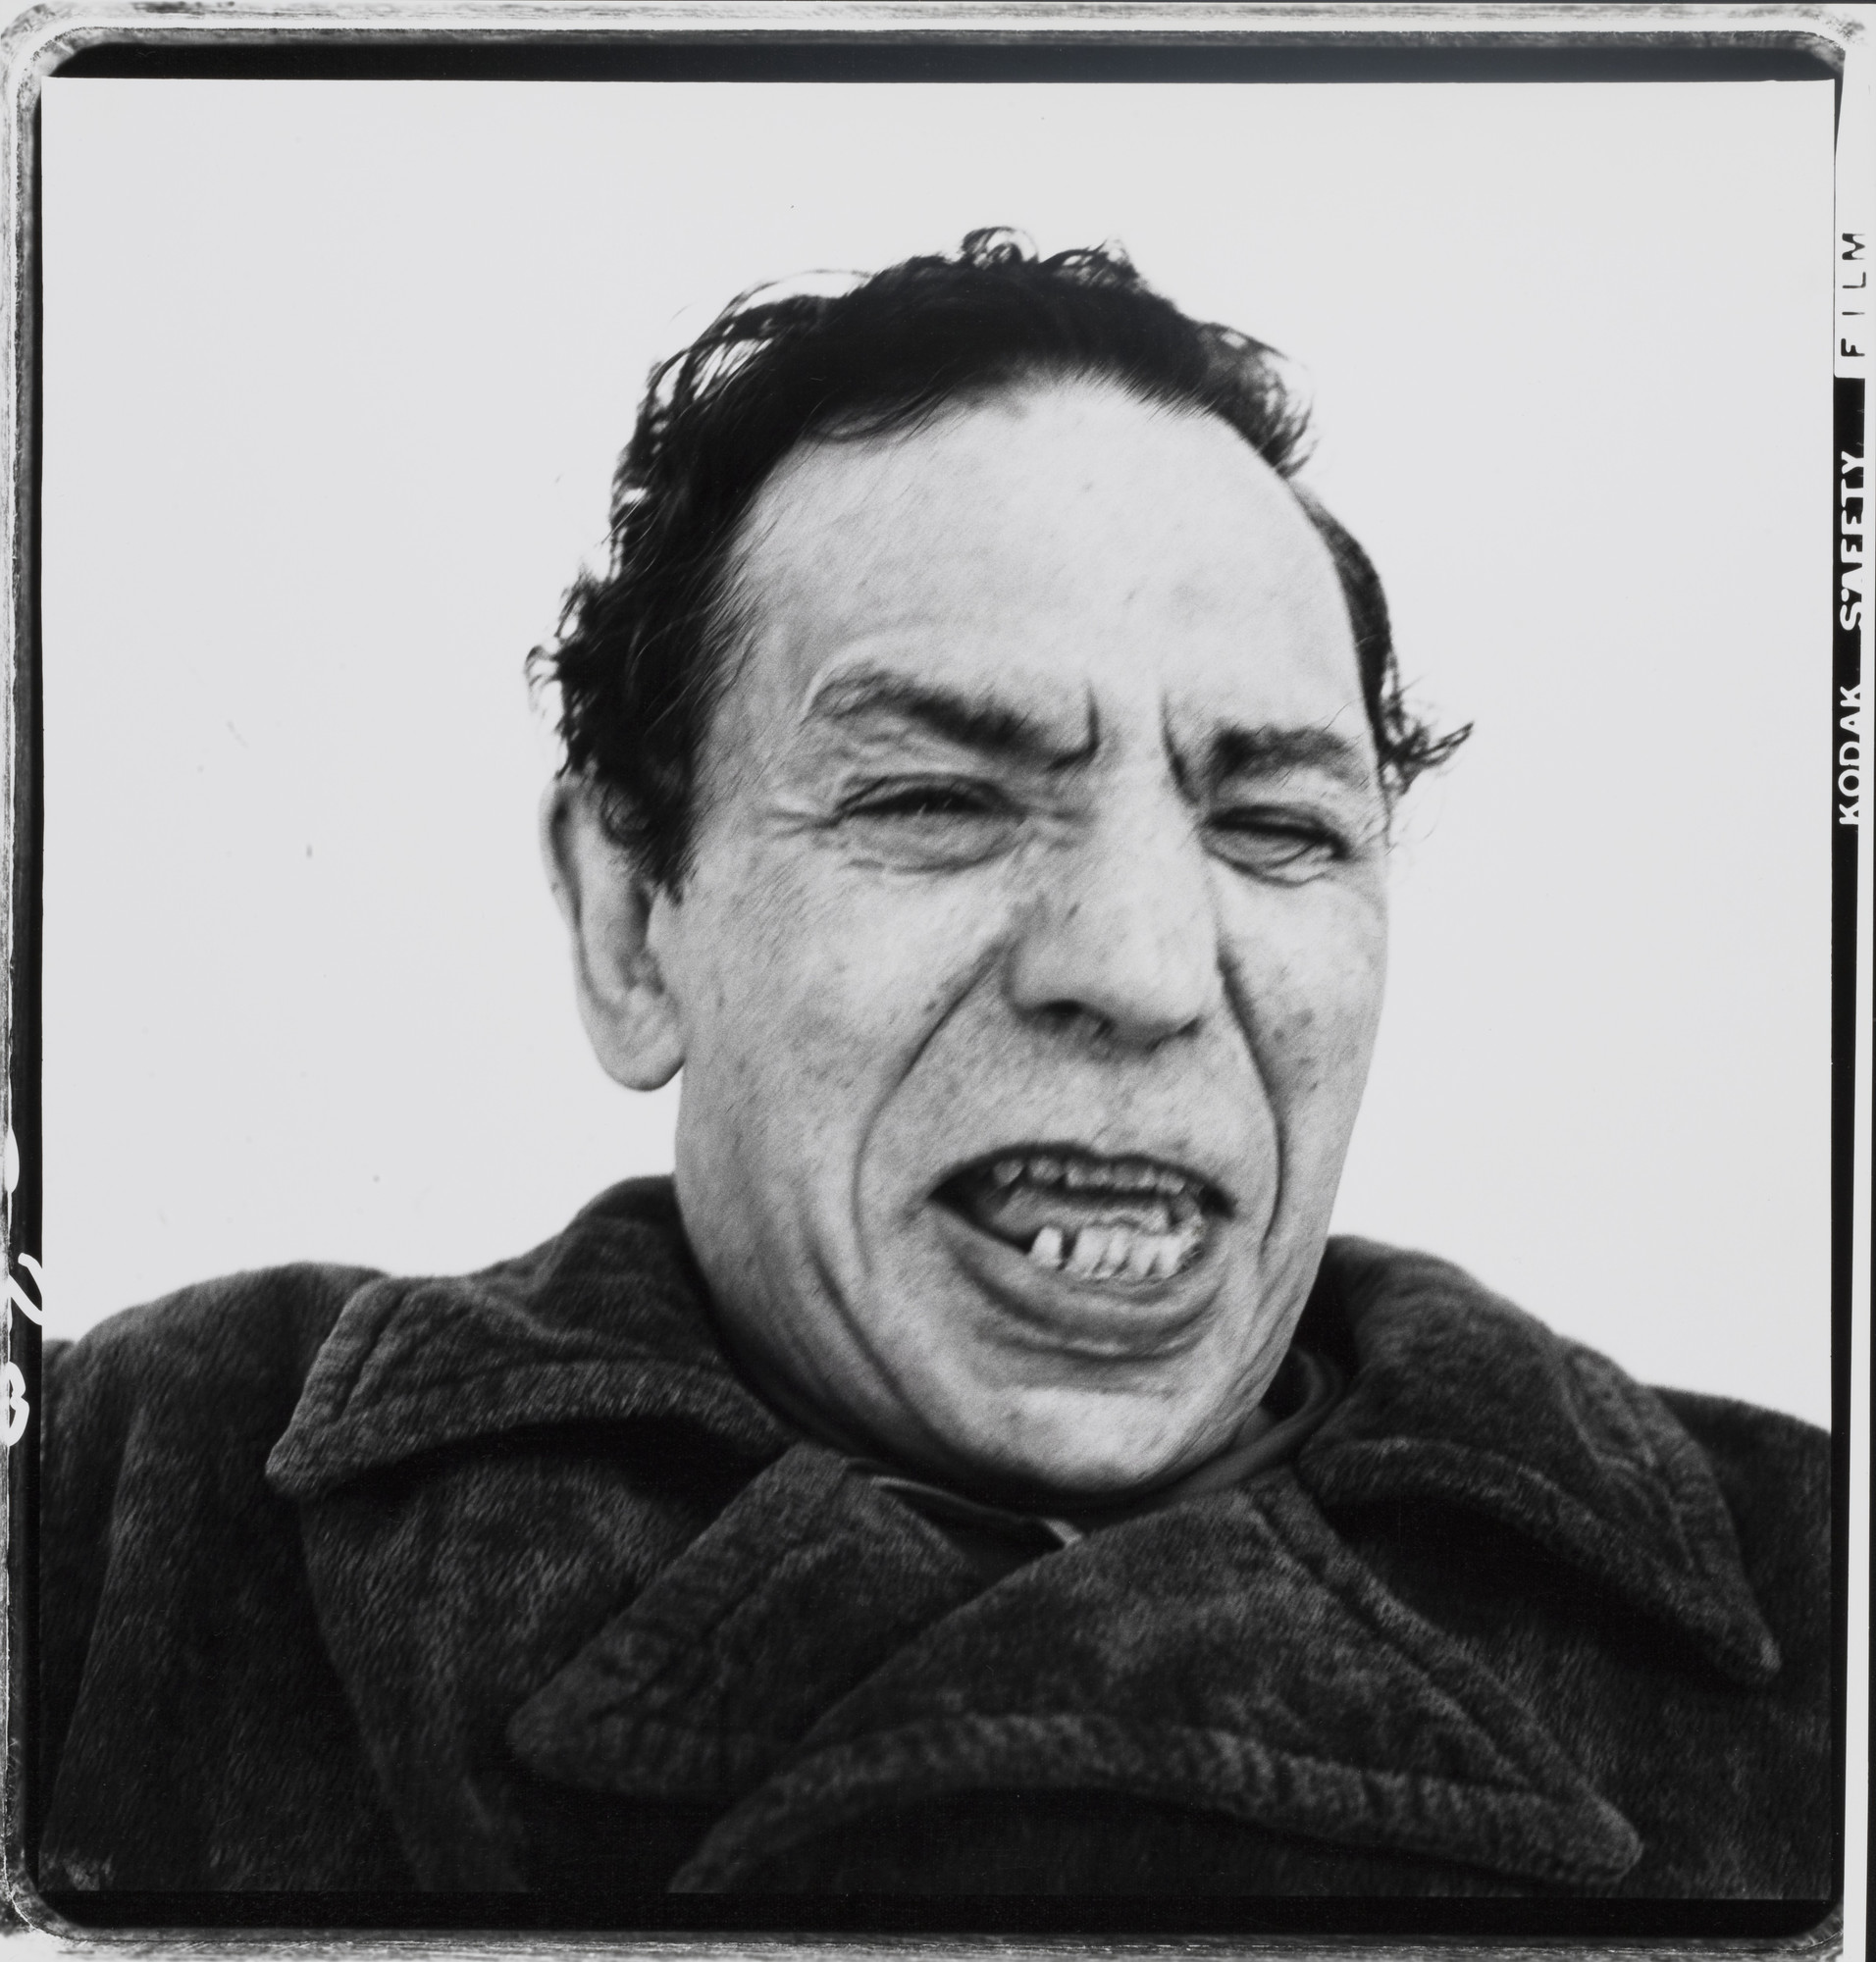 Richard Avedon. Oscar Levant, pianist, Beverly Hills, California. April 12, 1972